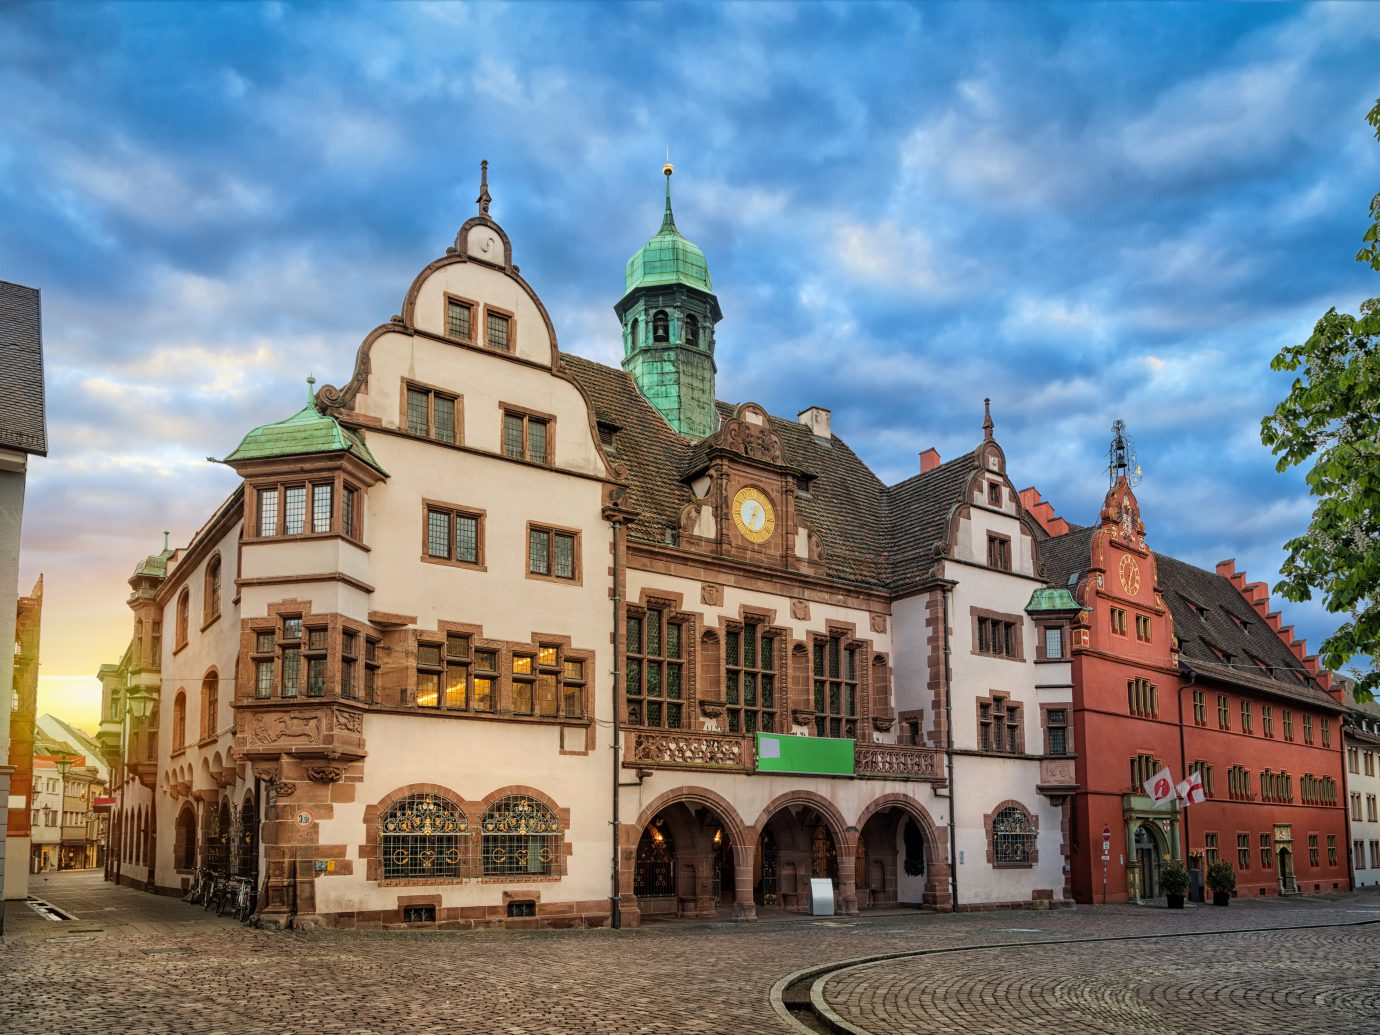 Old Town Hall (Altes Rathaus) on sunrise in Freiburg im Breisgau, Baden-Wurttemberg, Germany